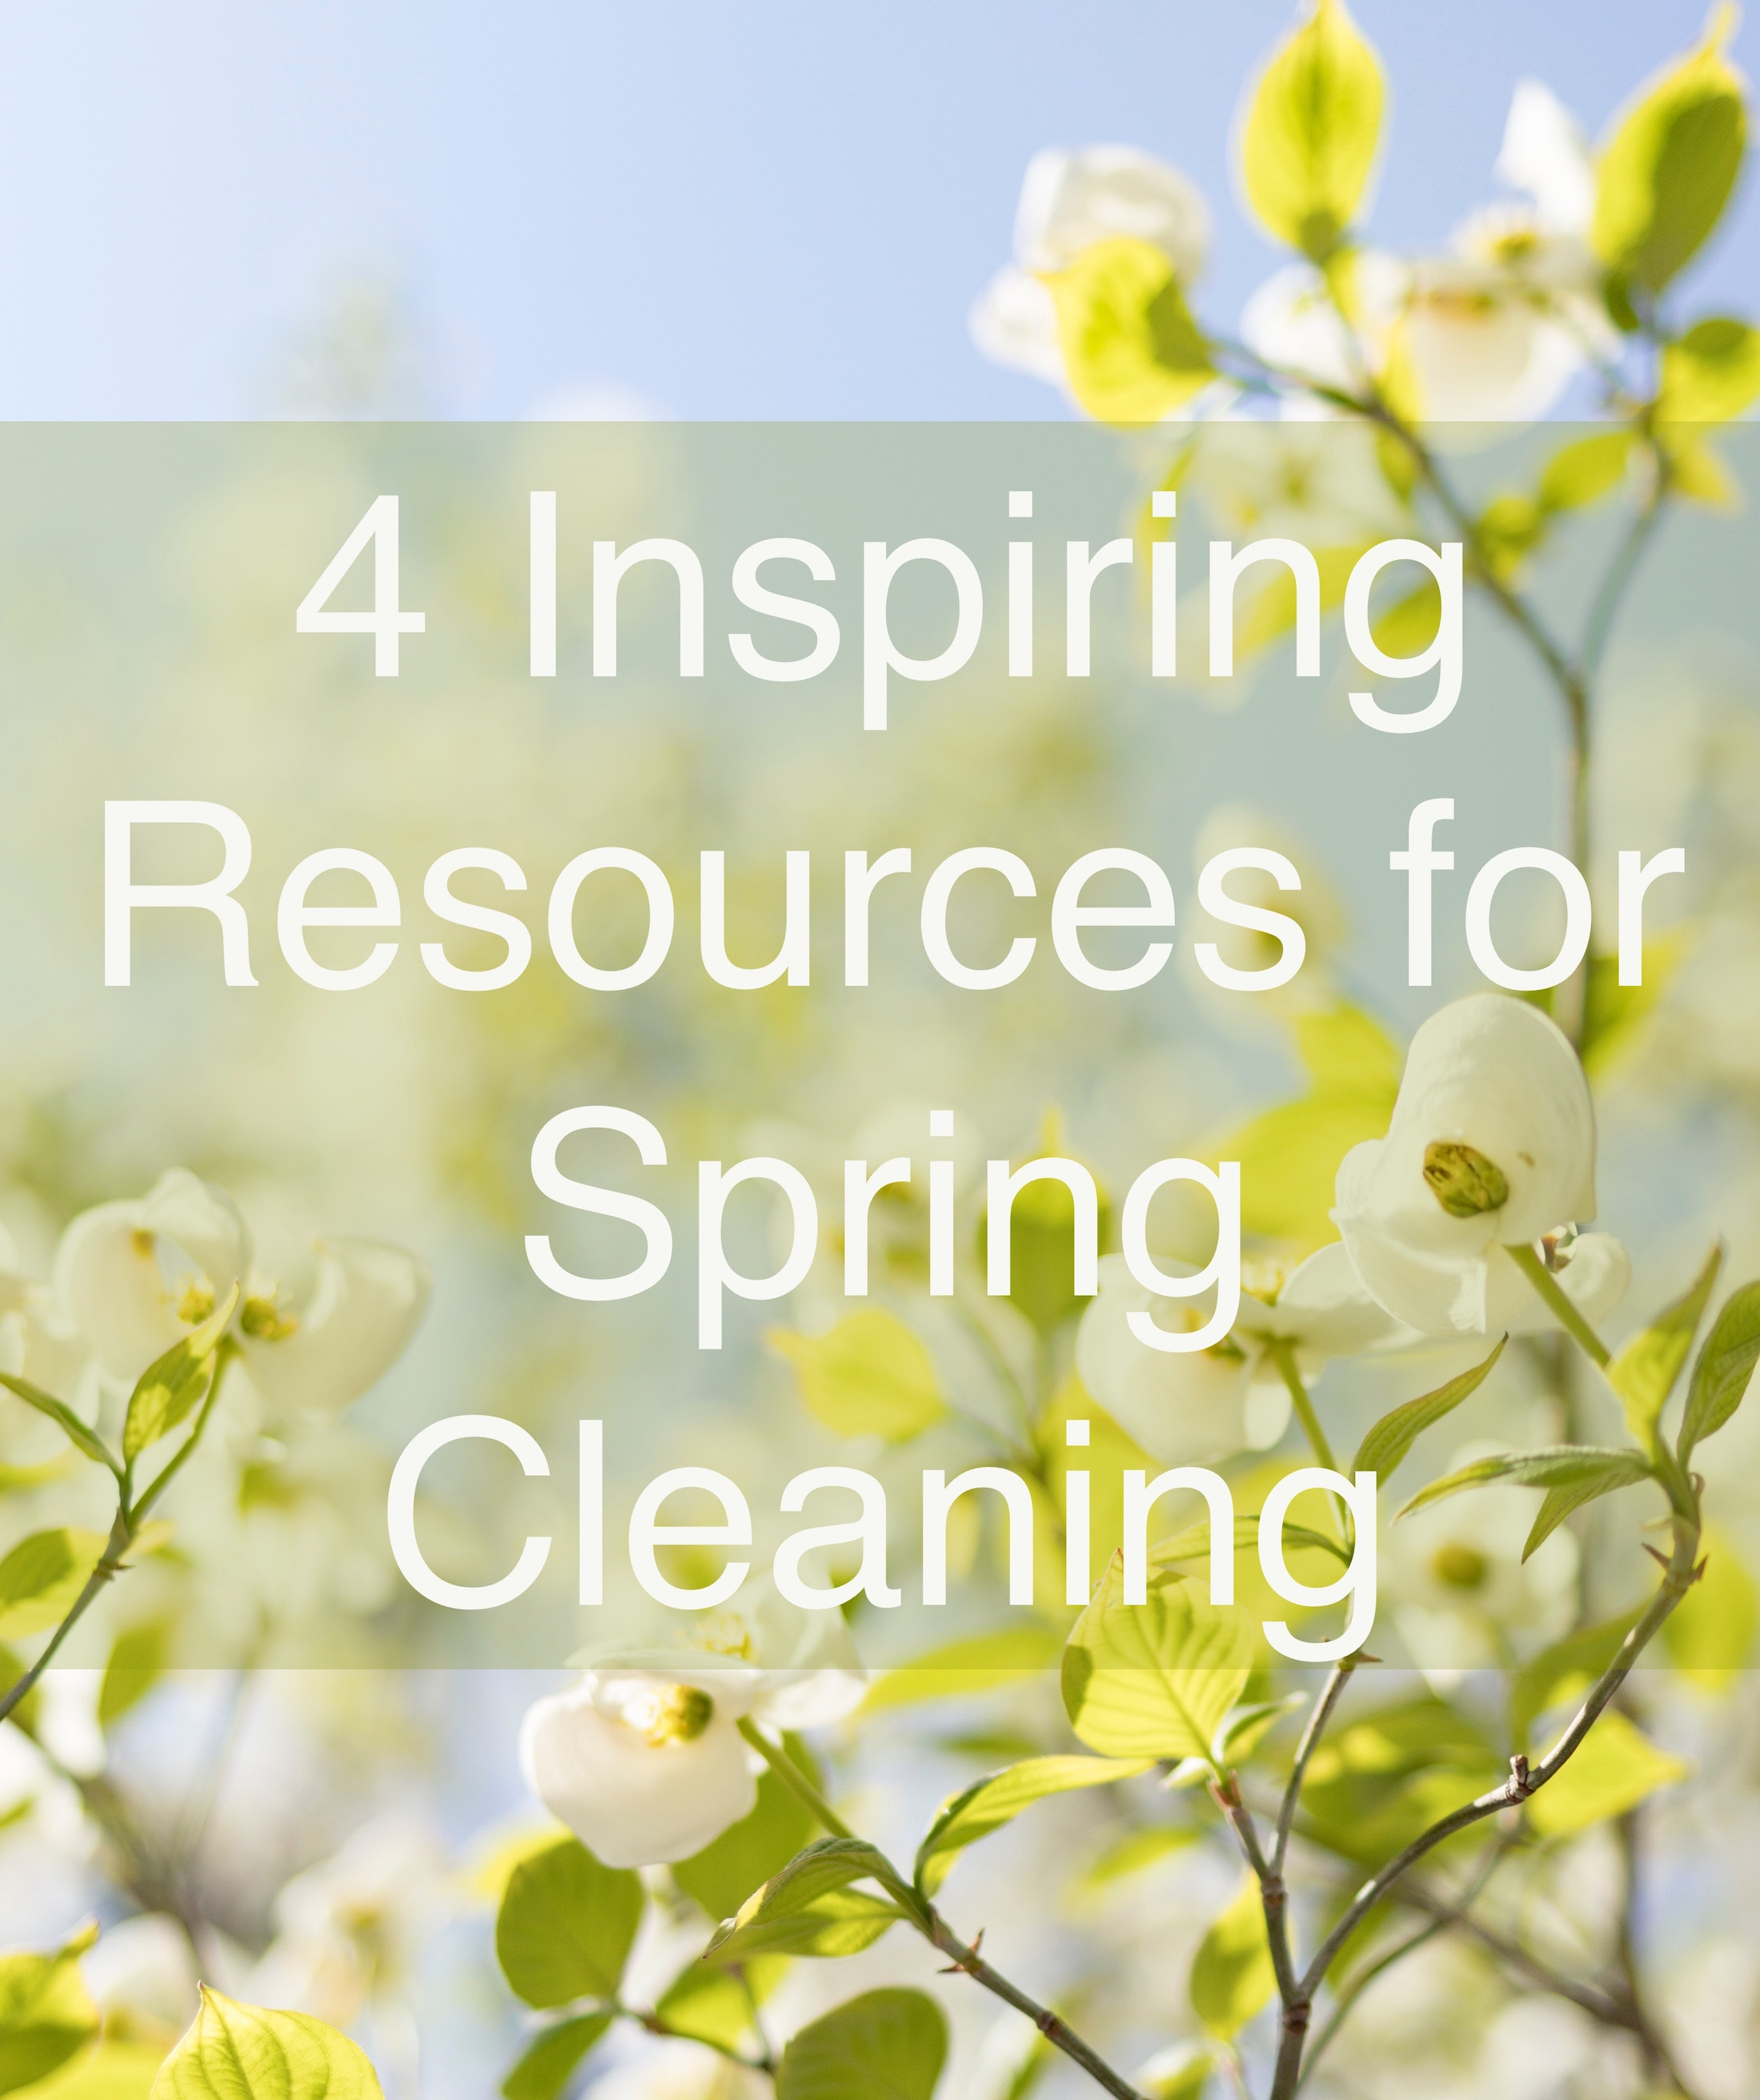 4 Inspiring Resources for Spring Cleaning